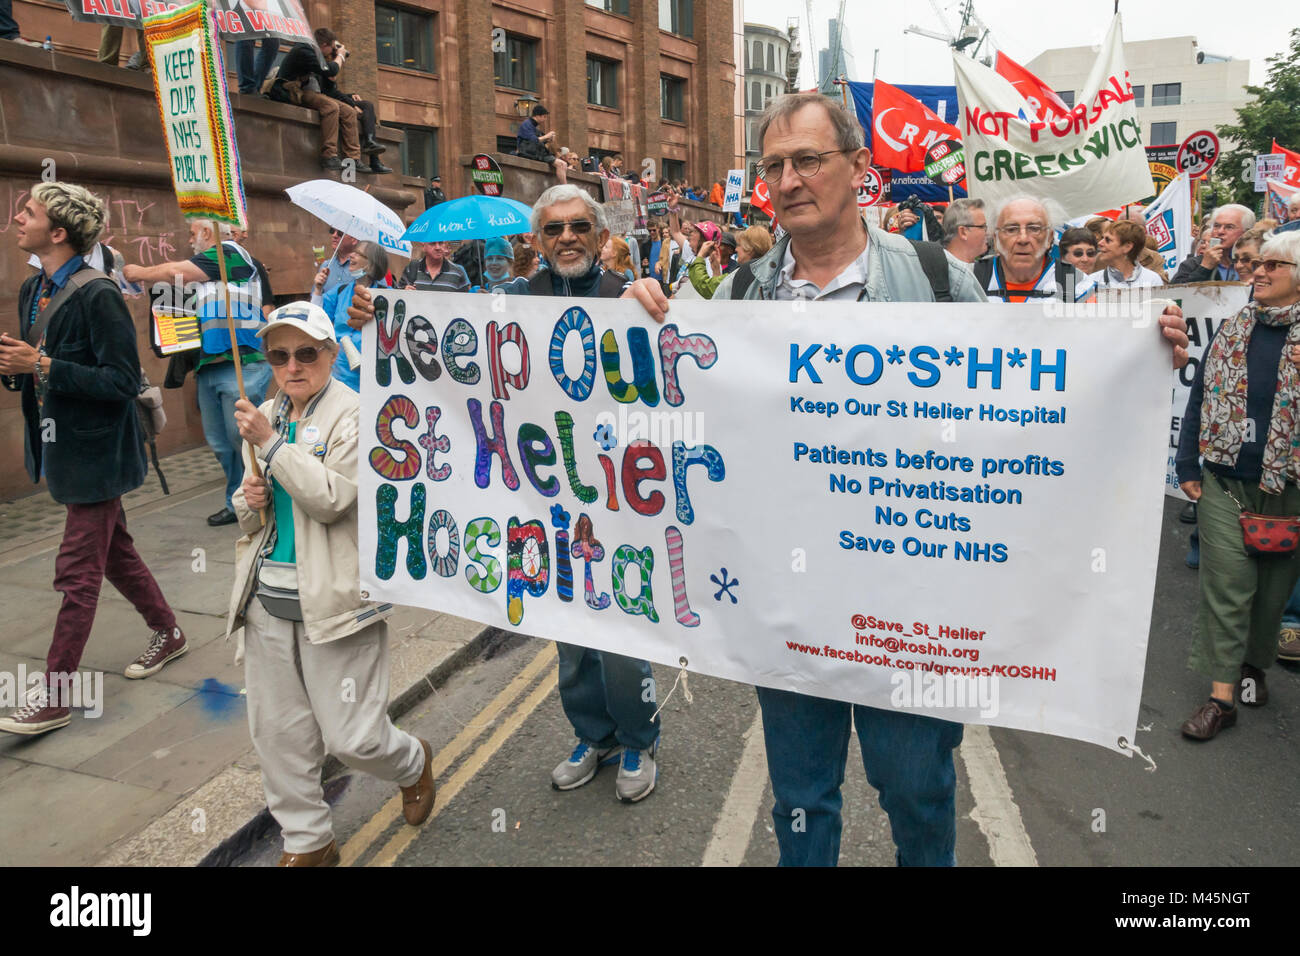 A woman carries an embroidered placard 'Keep Our NHS PUblic' next to the Keep of St Helier Hospital banner - Stock Image